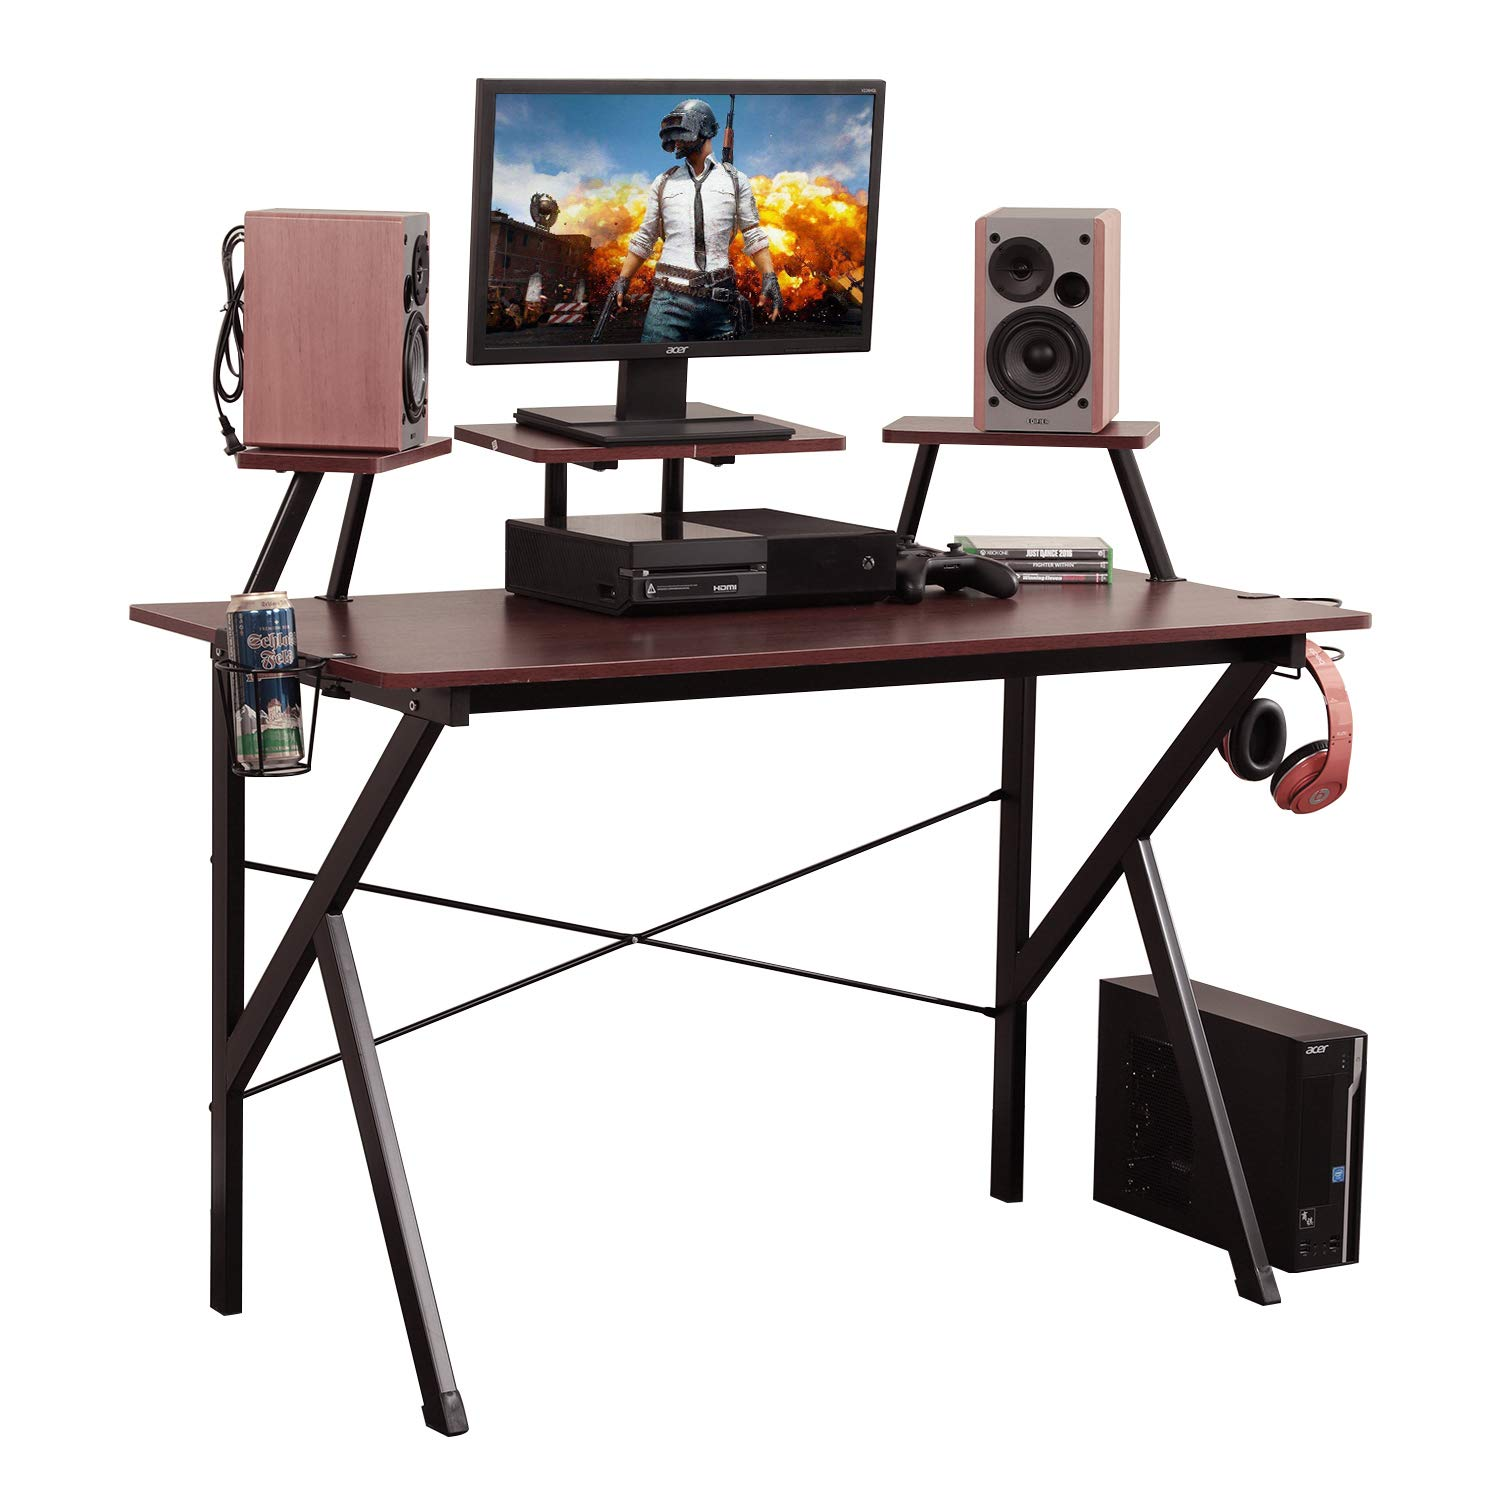 Soges Gaming Desk 47 inches Computer Desk Workstation Desk with Adjustable Support Panel, Cup Holder, Basket Hook, Walnut YX001-120-W